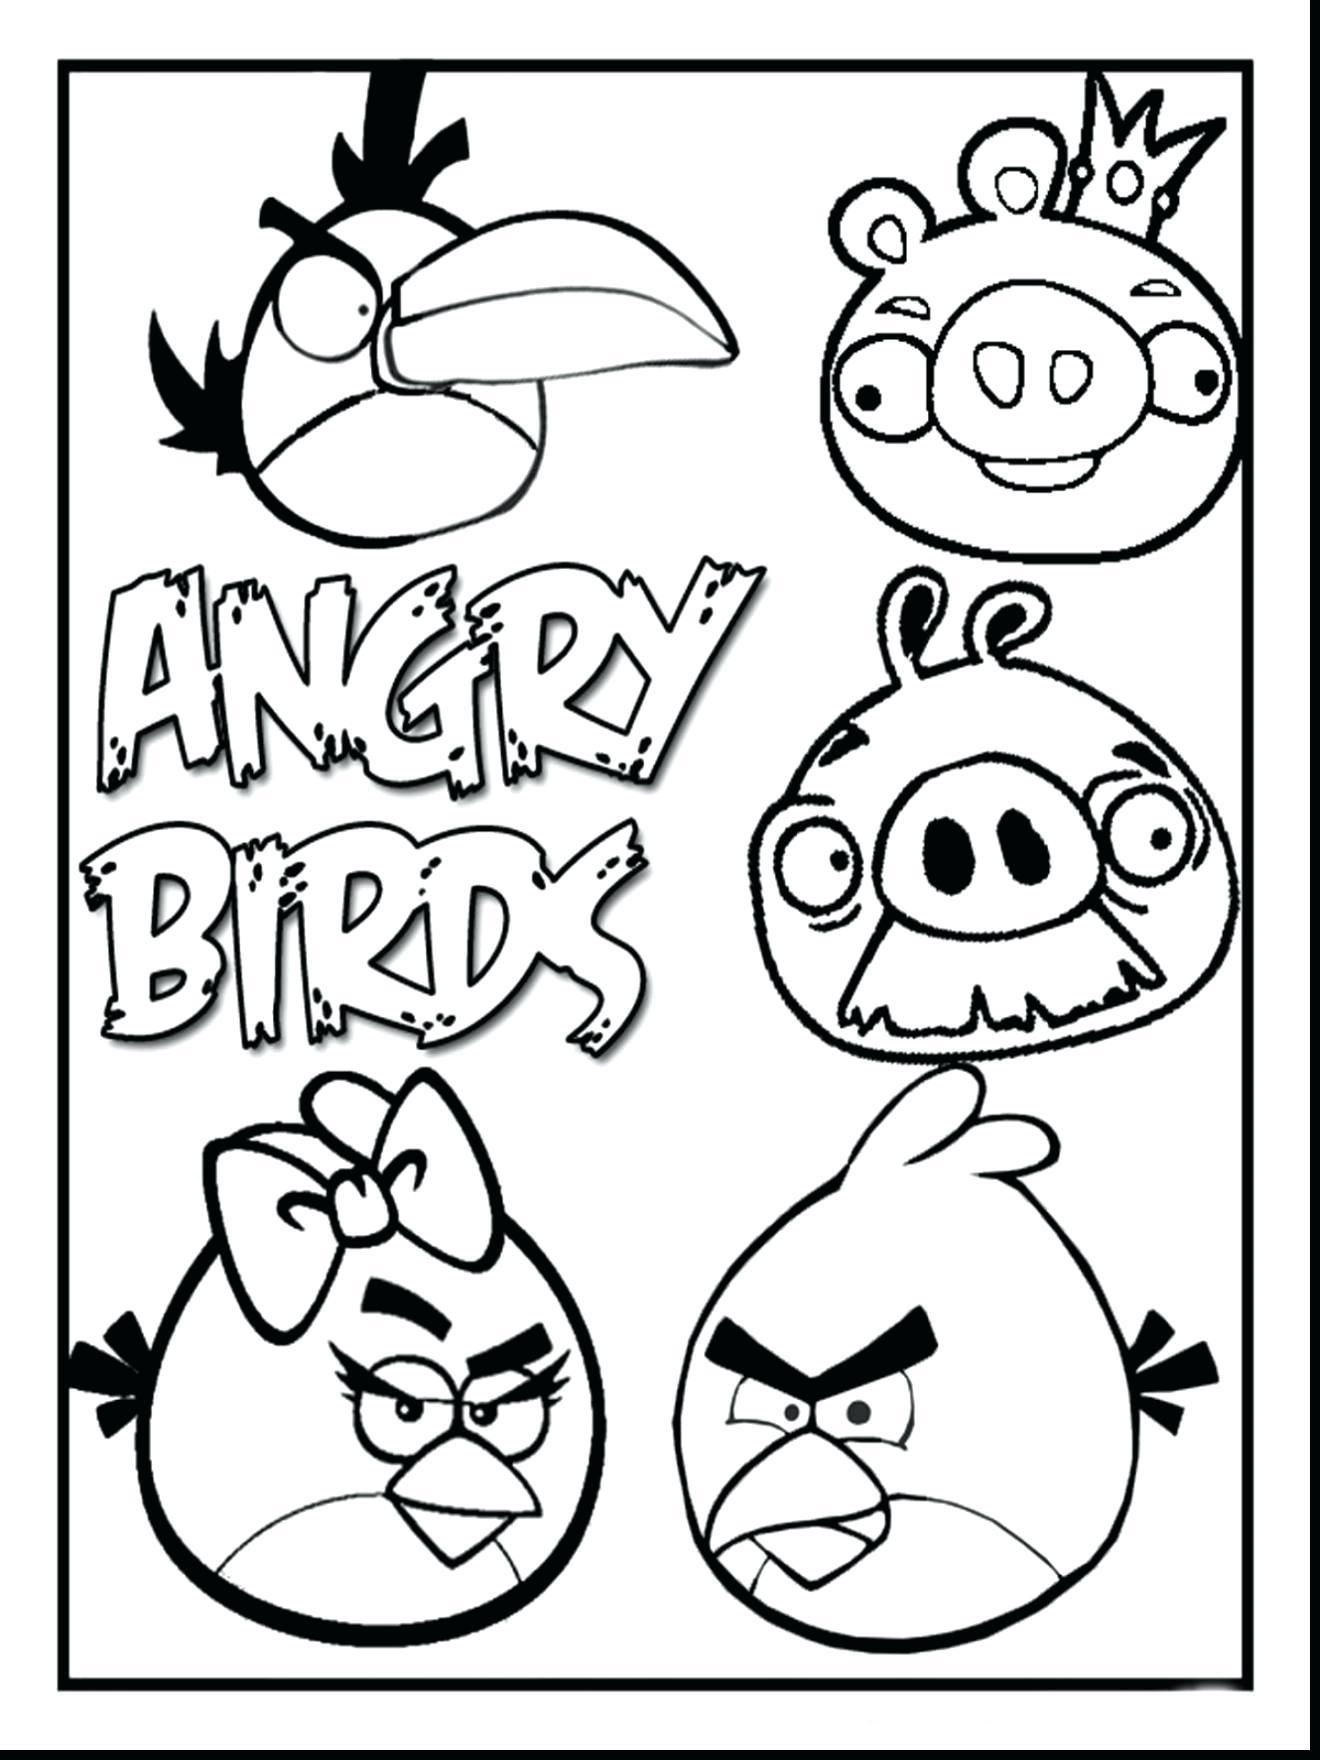 1320x1760 Angry Birds Space Coloring Pages Blackbird Coloring Sheets